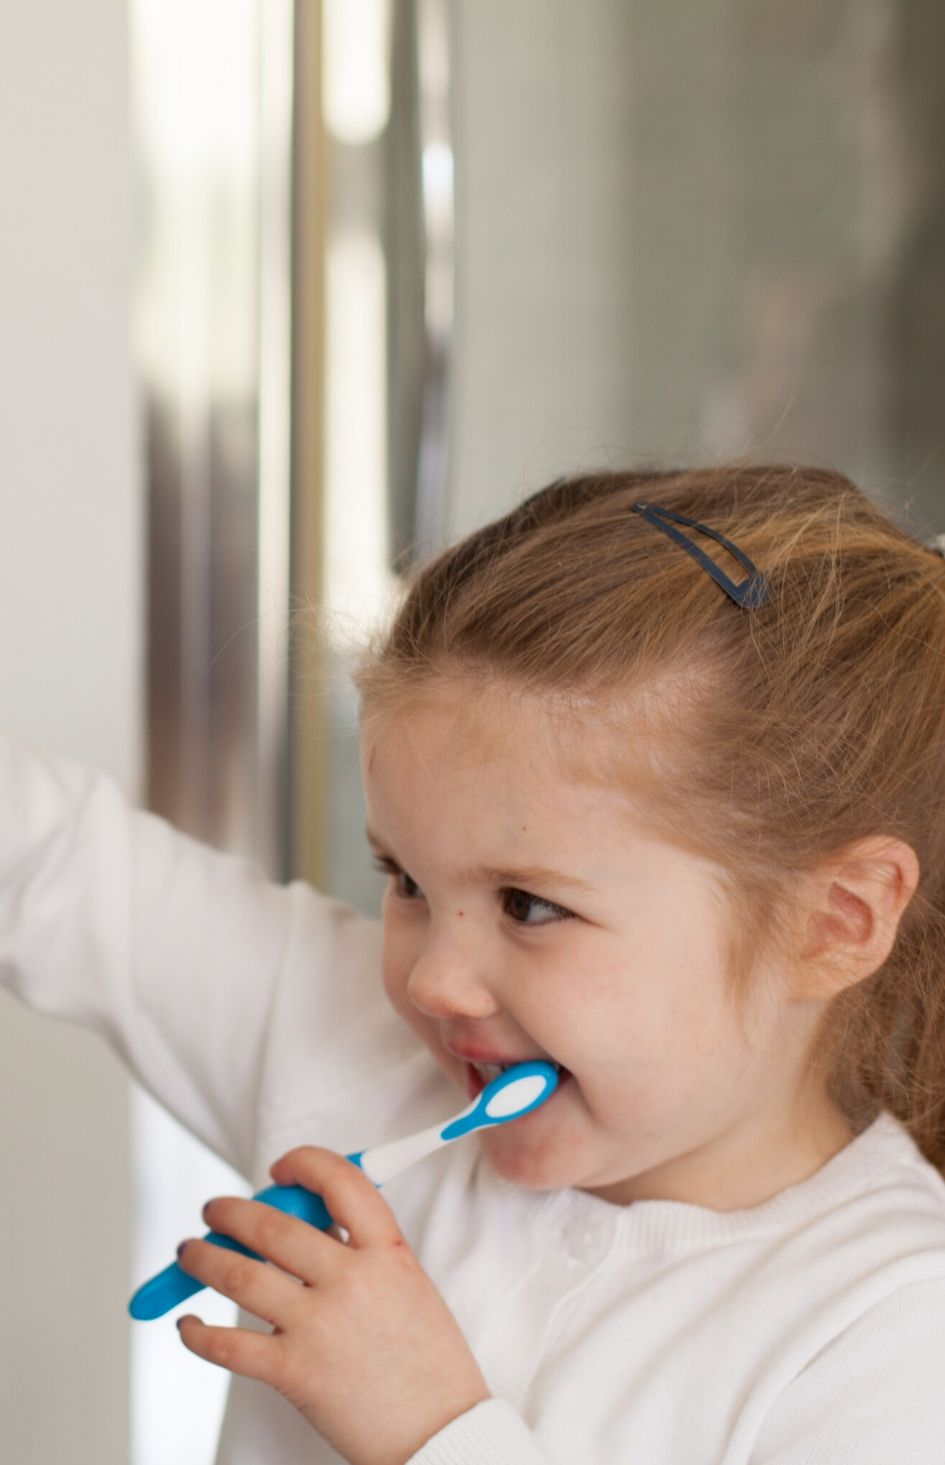 Safe and Sound Health Children's toothbrush with timer in blue